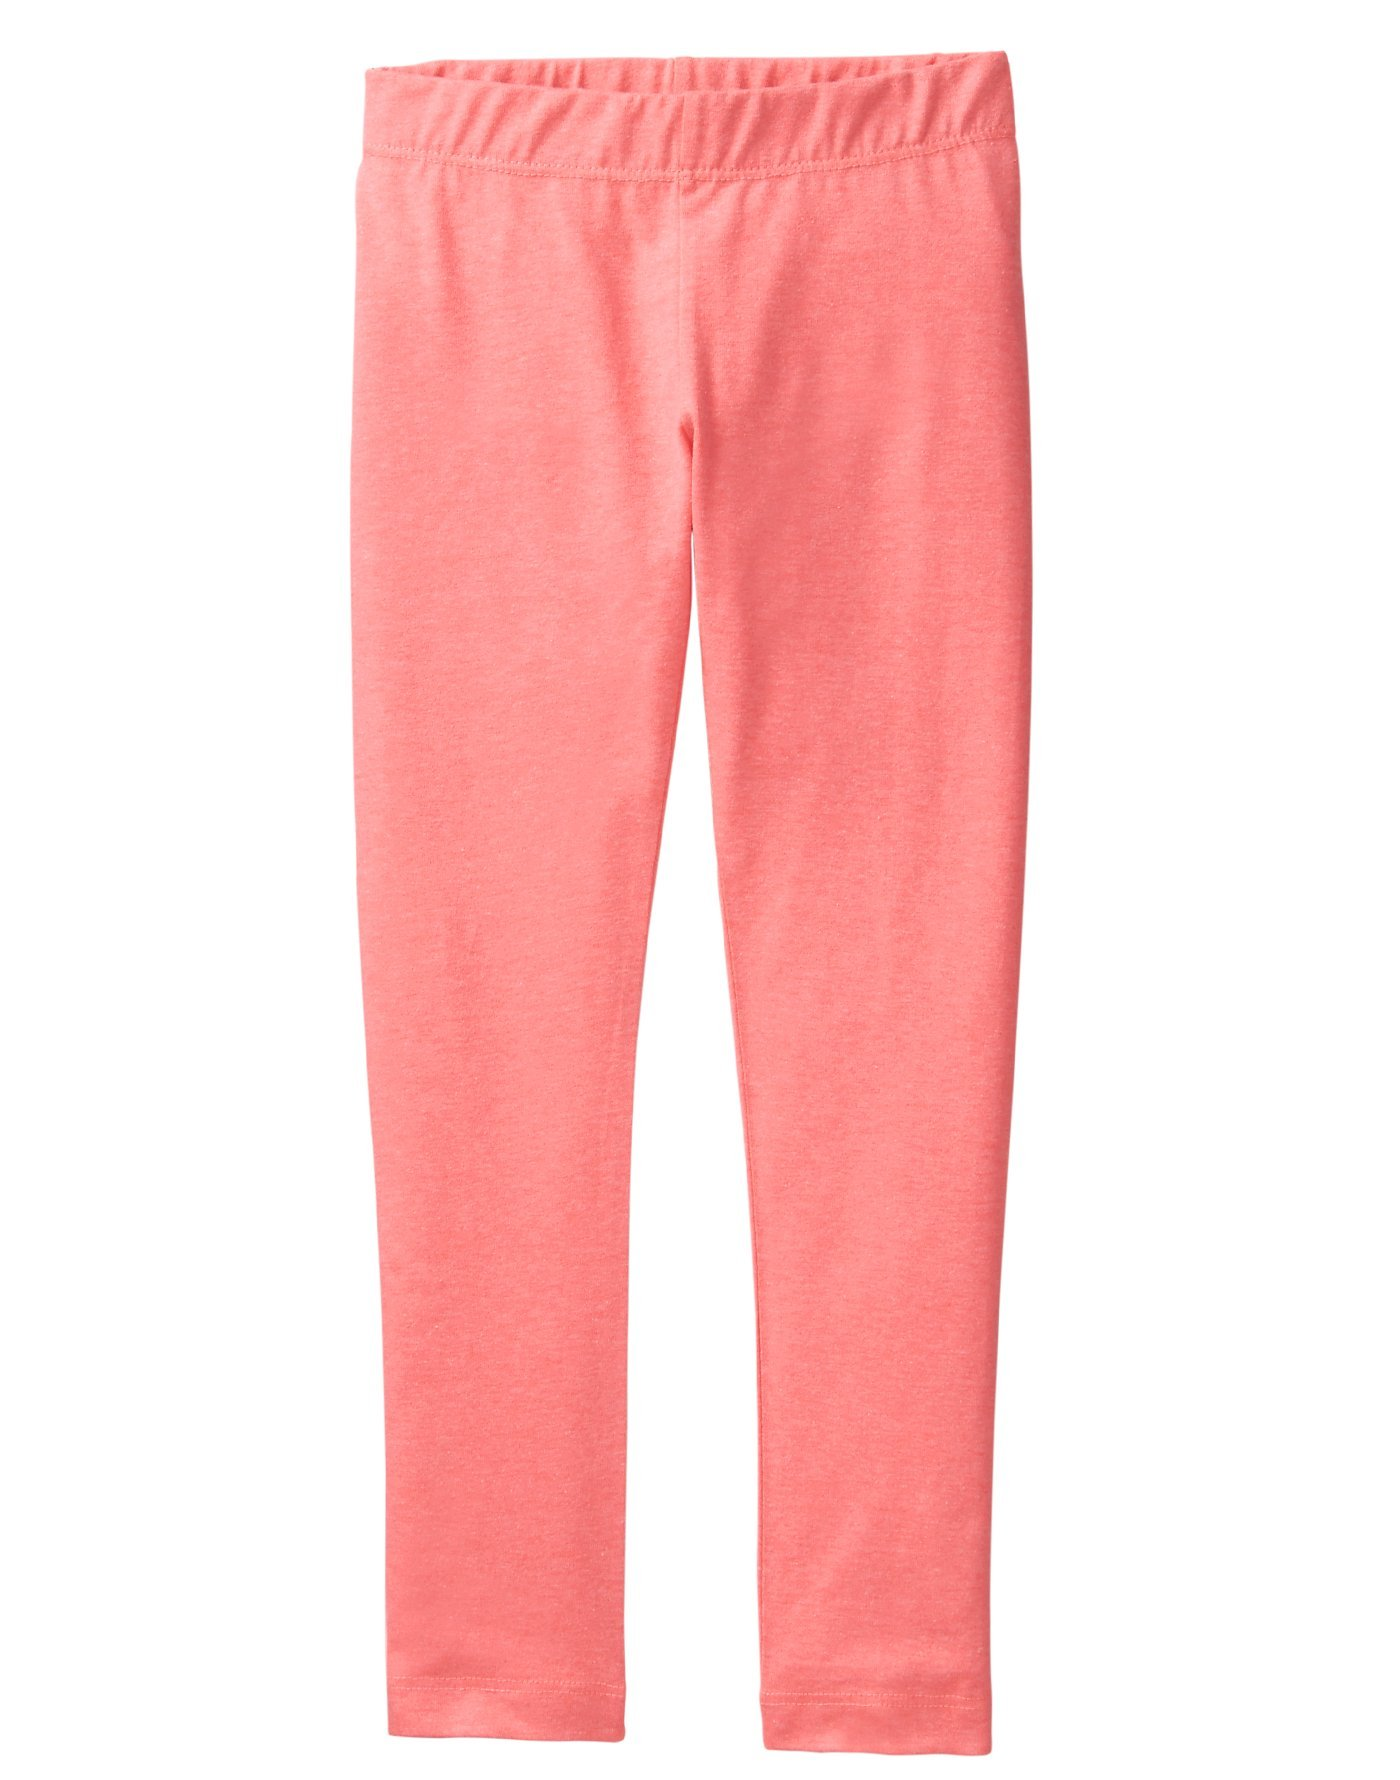 Crazy 8 Little Girls' Basic Legging, Coral, XS